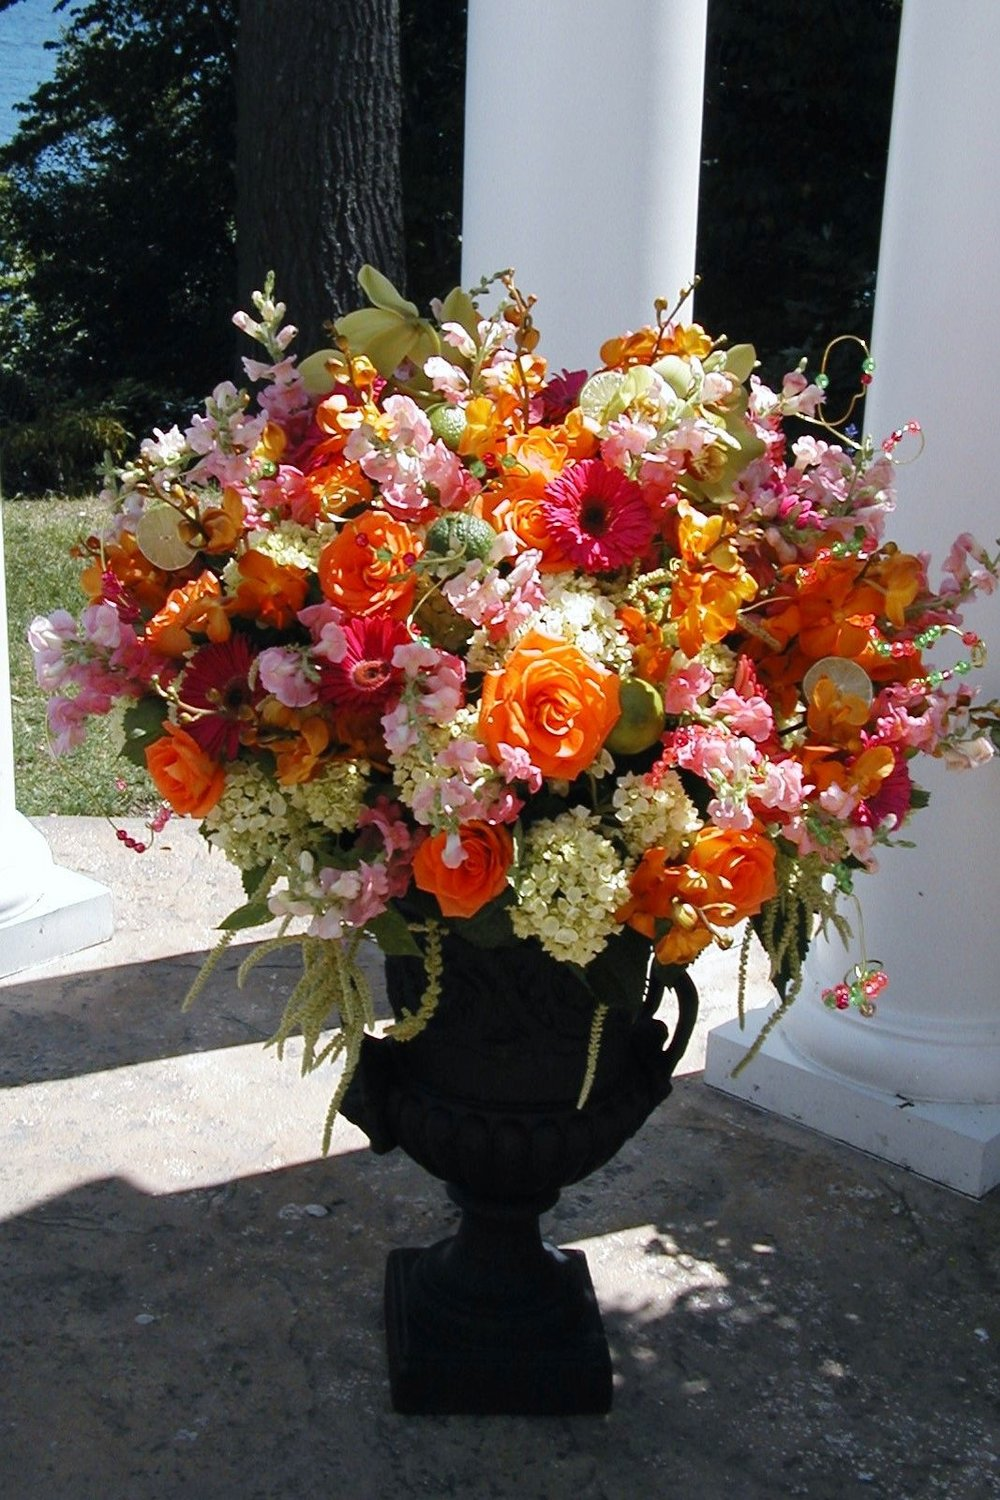 Urn overflowing with bright orange, green and purple roses for a wedding ceremony